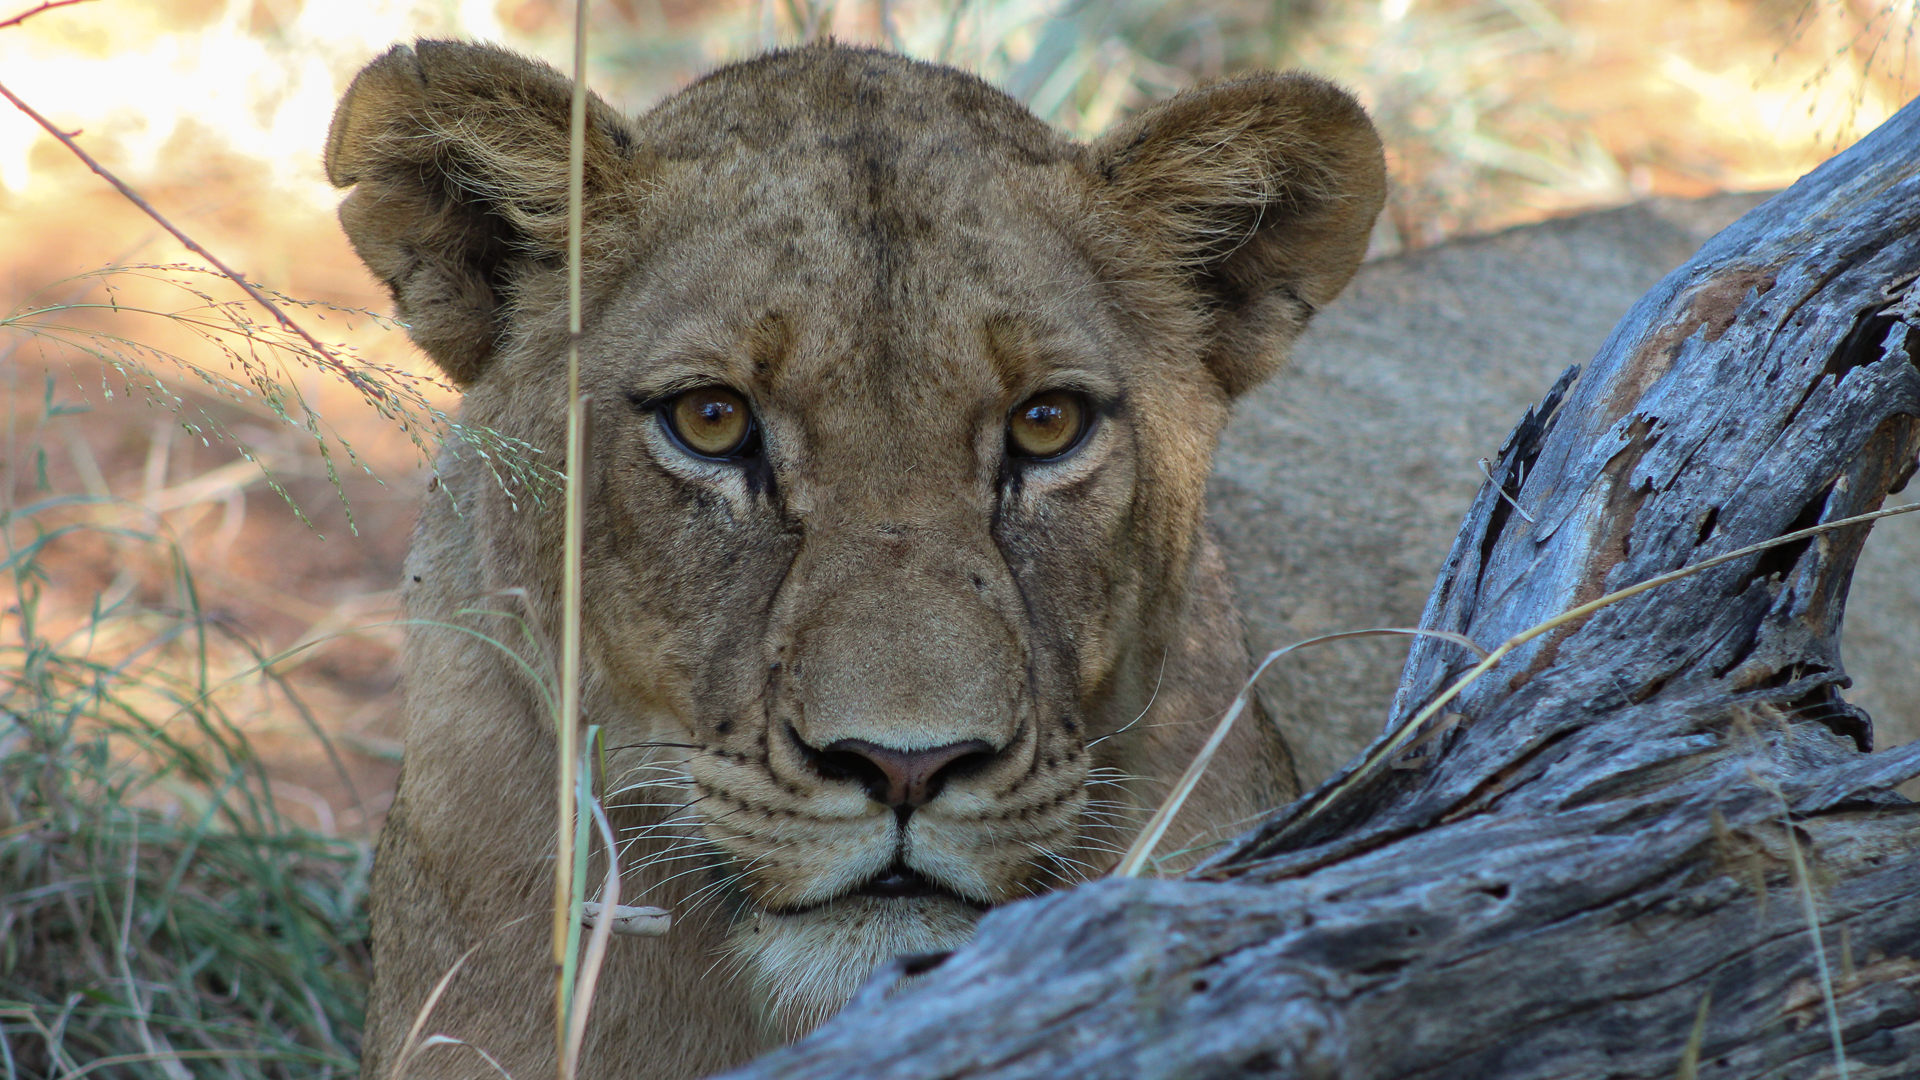 Lorry Cumming – Lioness Makalali Game Reserve – HM